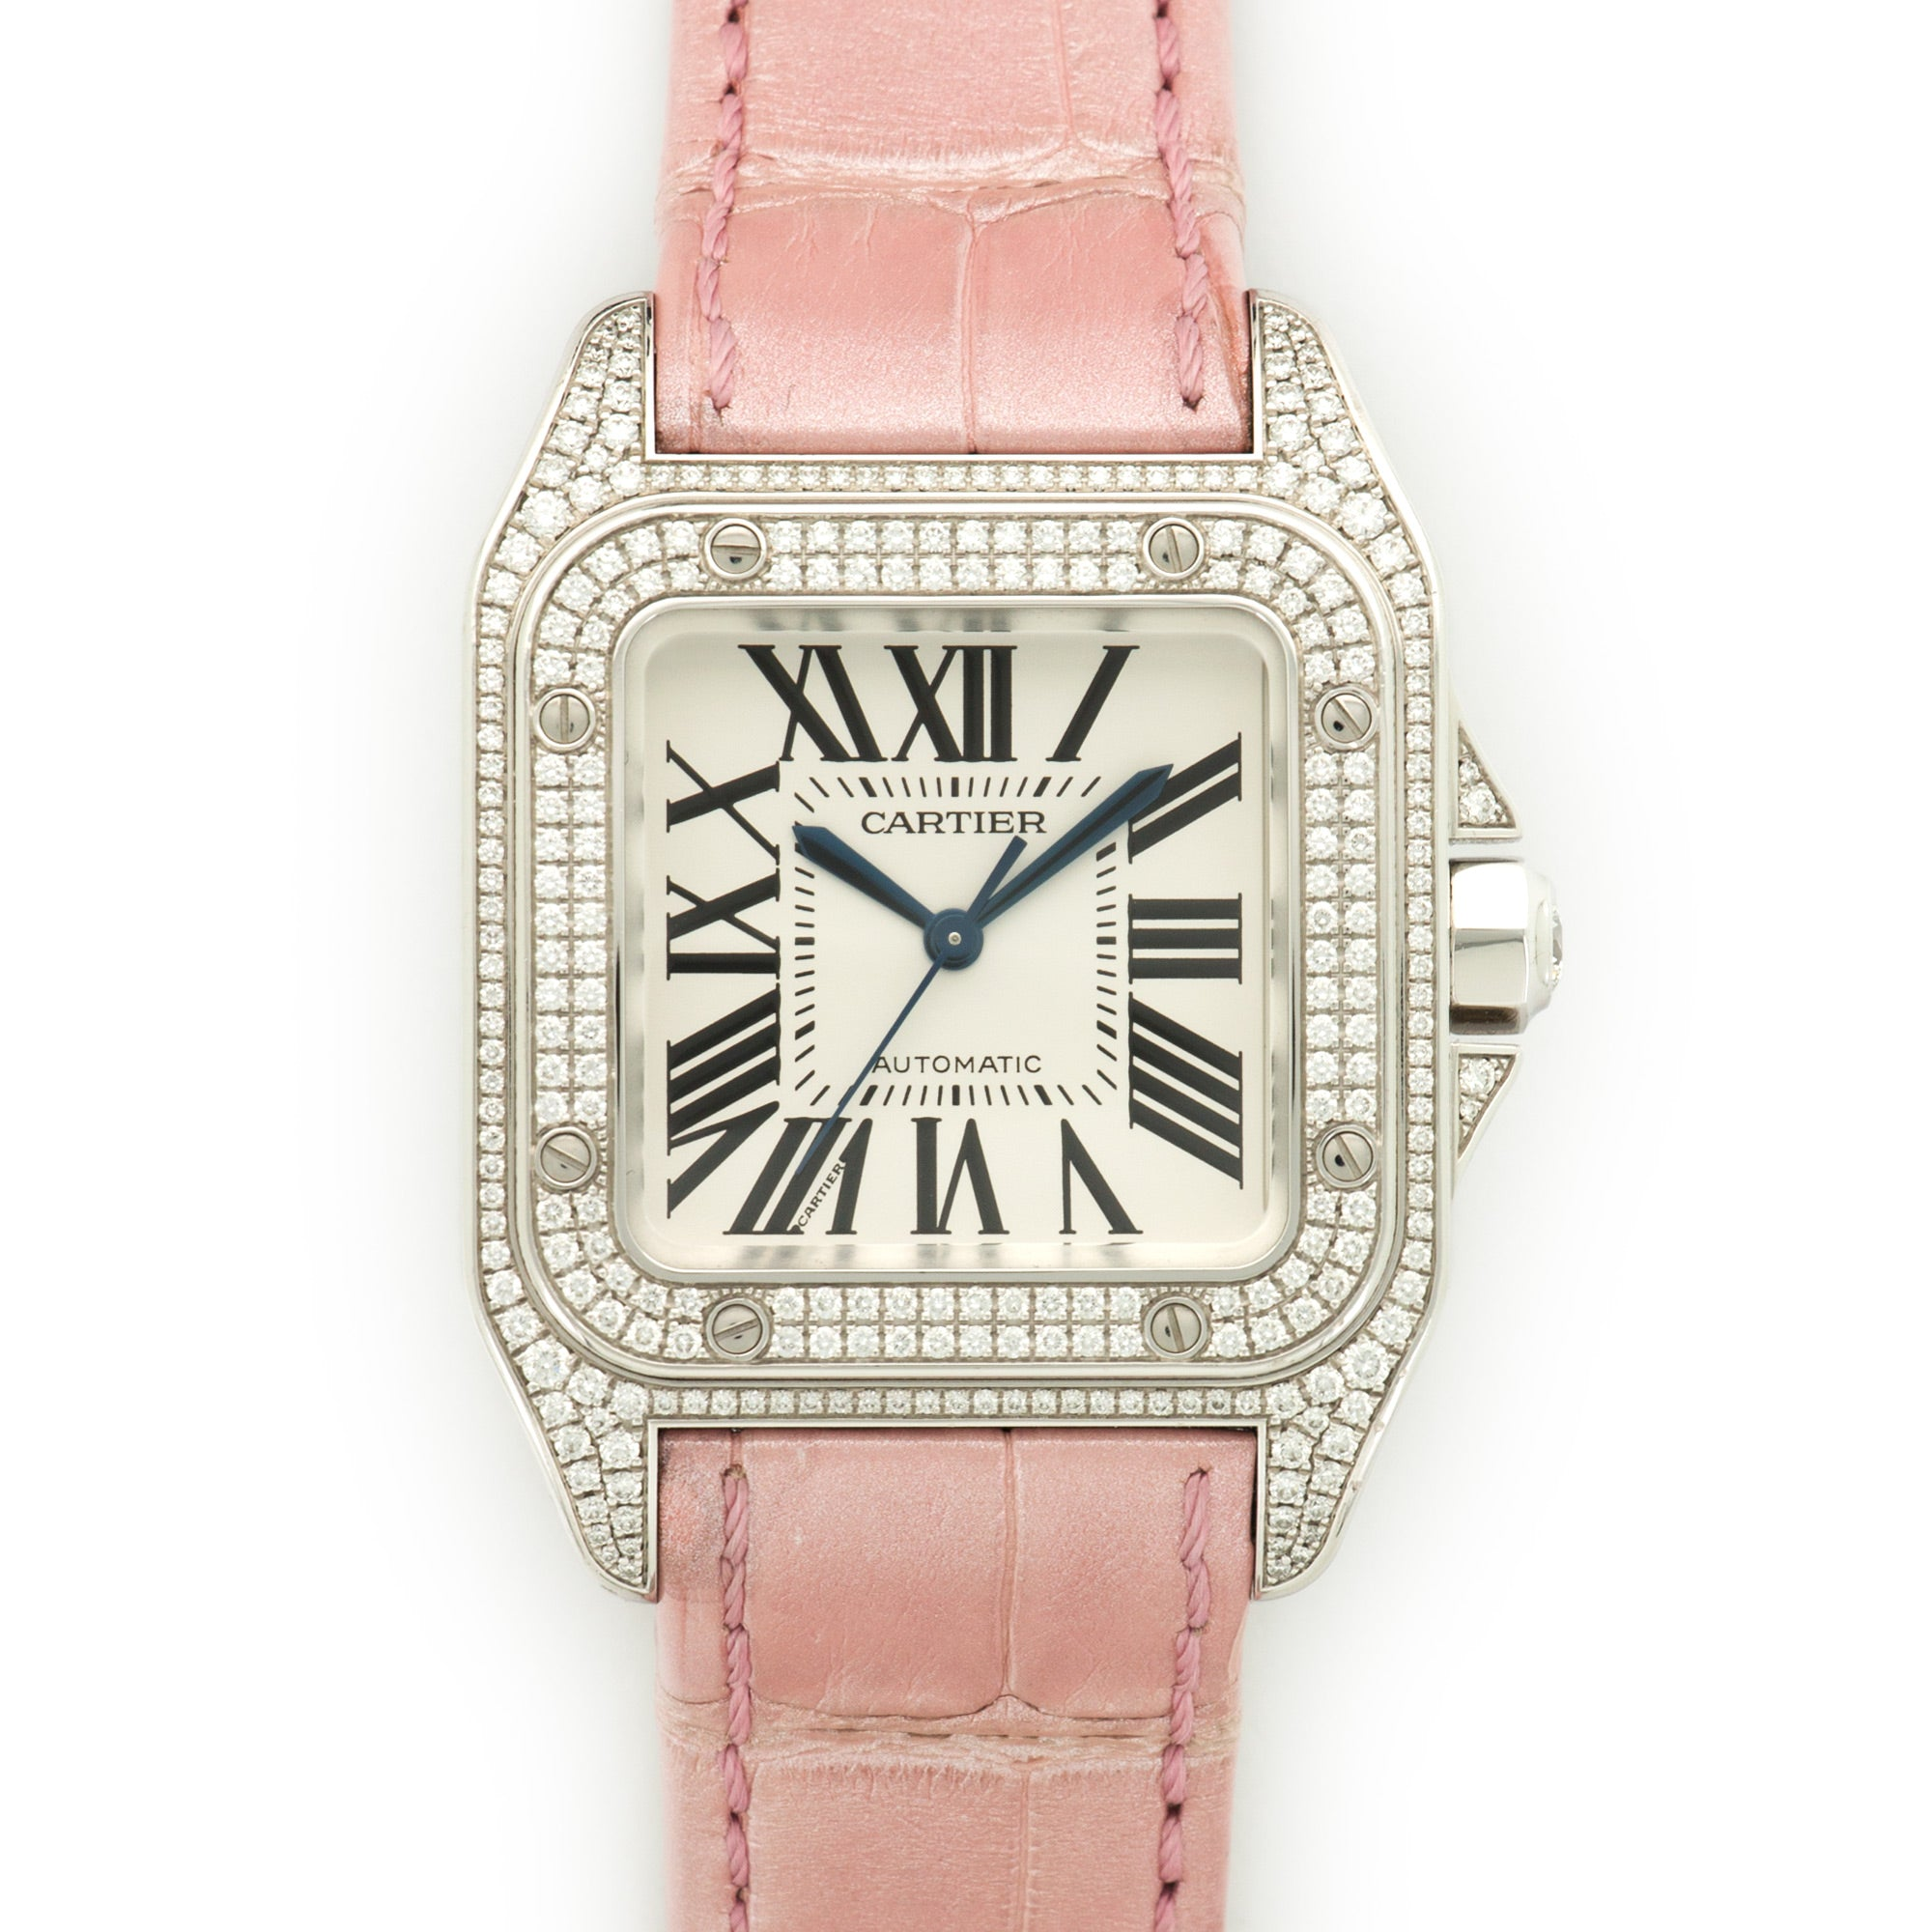 Cartier Santos 100 WM501751 18k WG  Excellent Unisex 18k WG Silver with Roman Numerals 44 X 33mm Automatic 2000s Pink Crocodile Original Box and Certificate